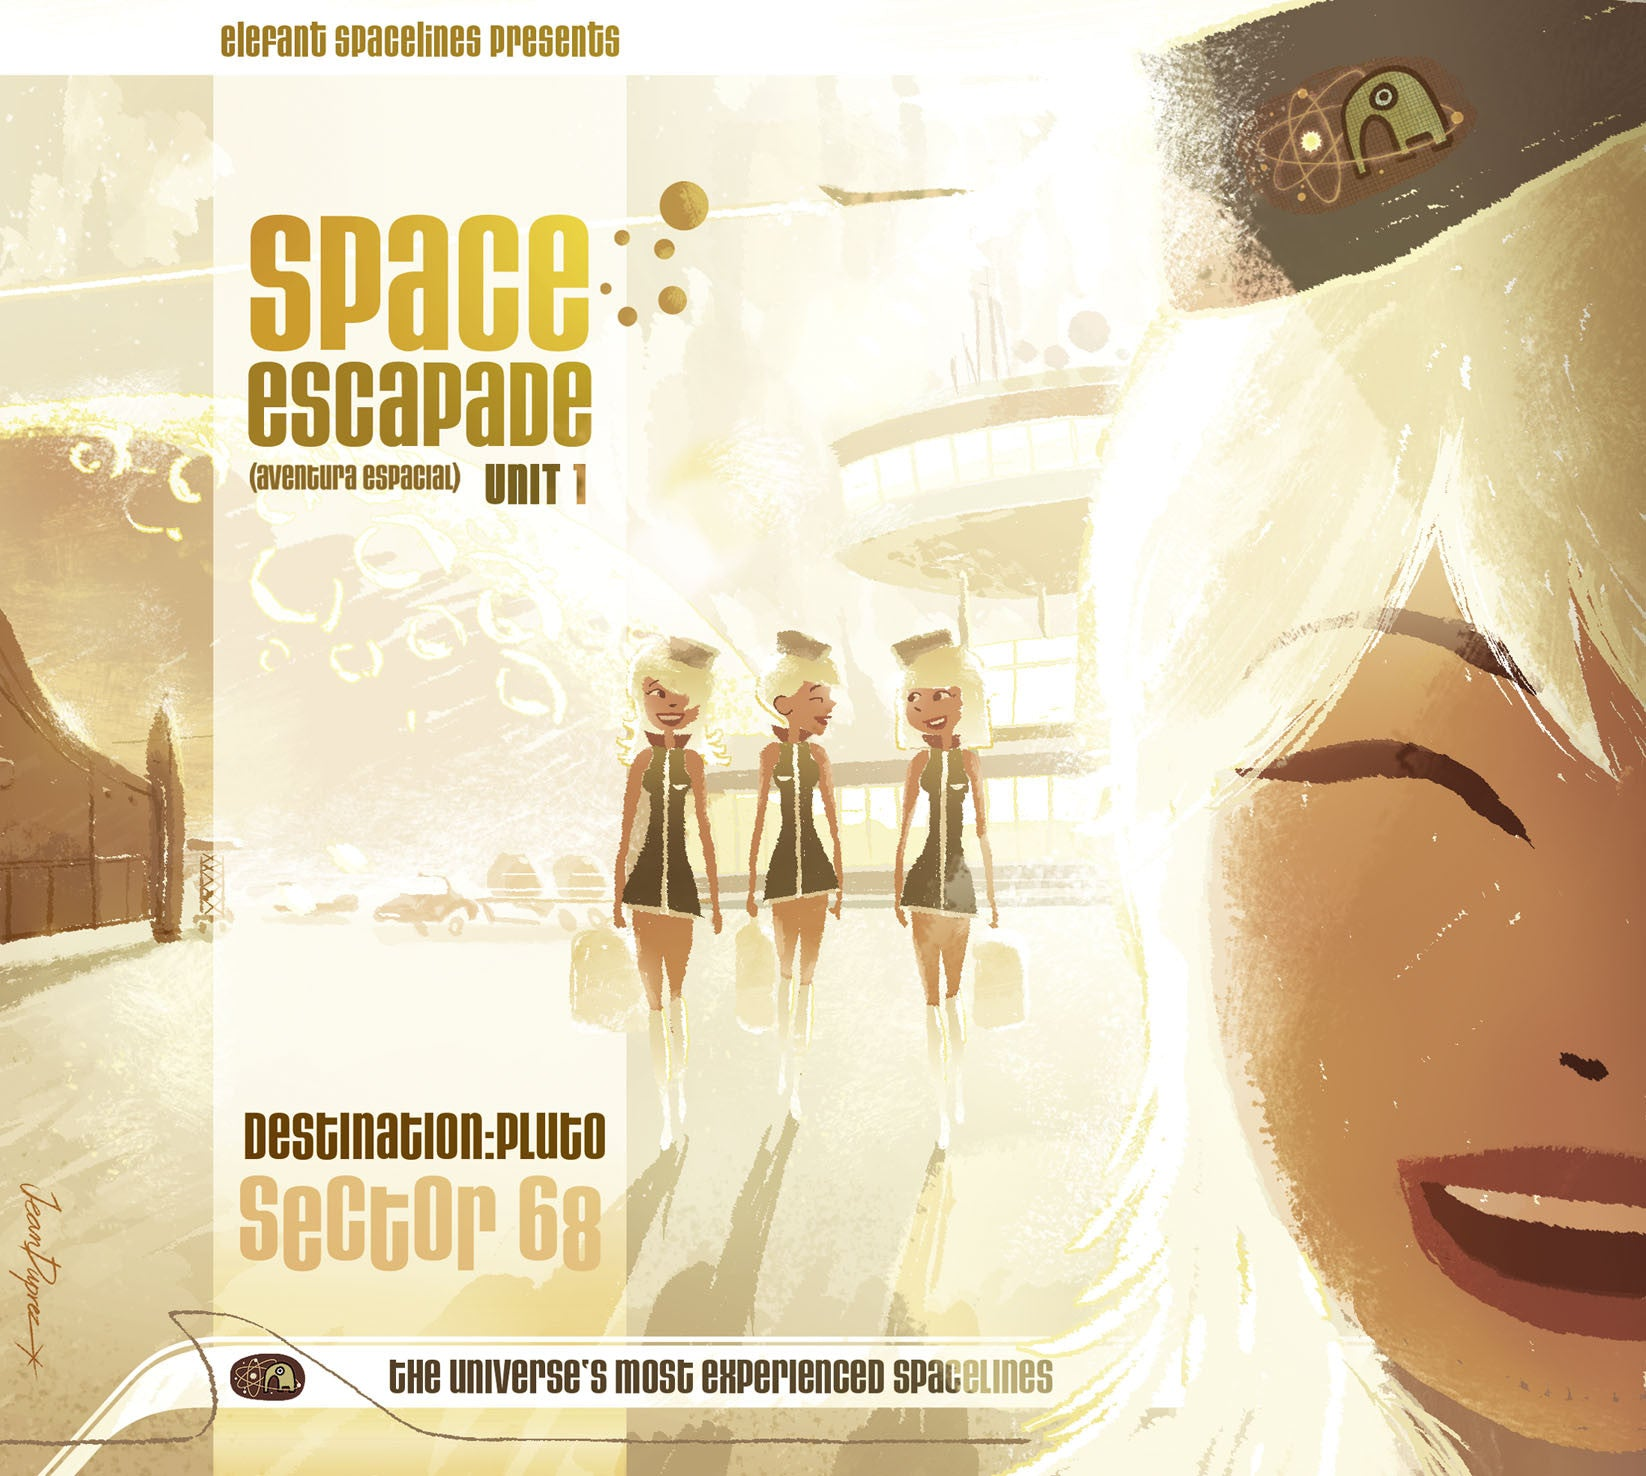 v/a - Space Escapade (Aventura Espacial) Unit 1